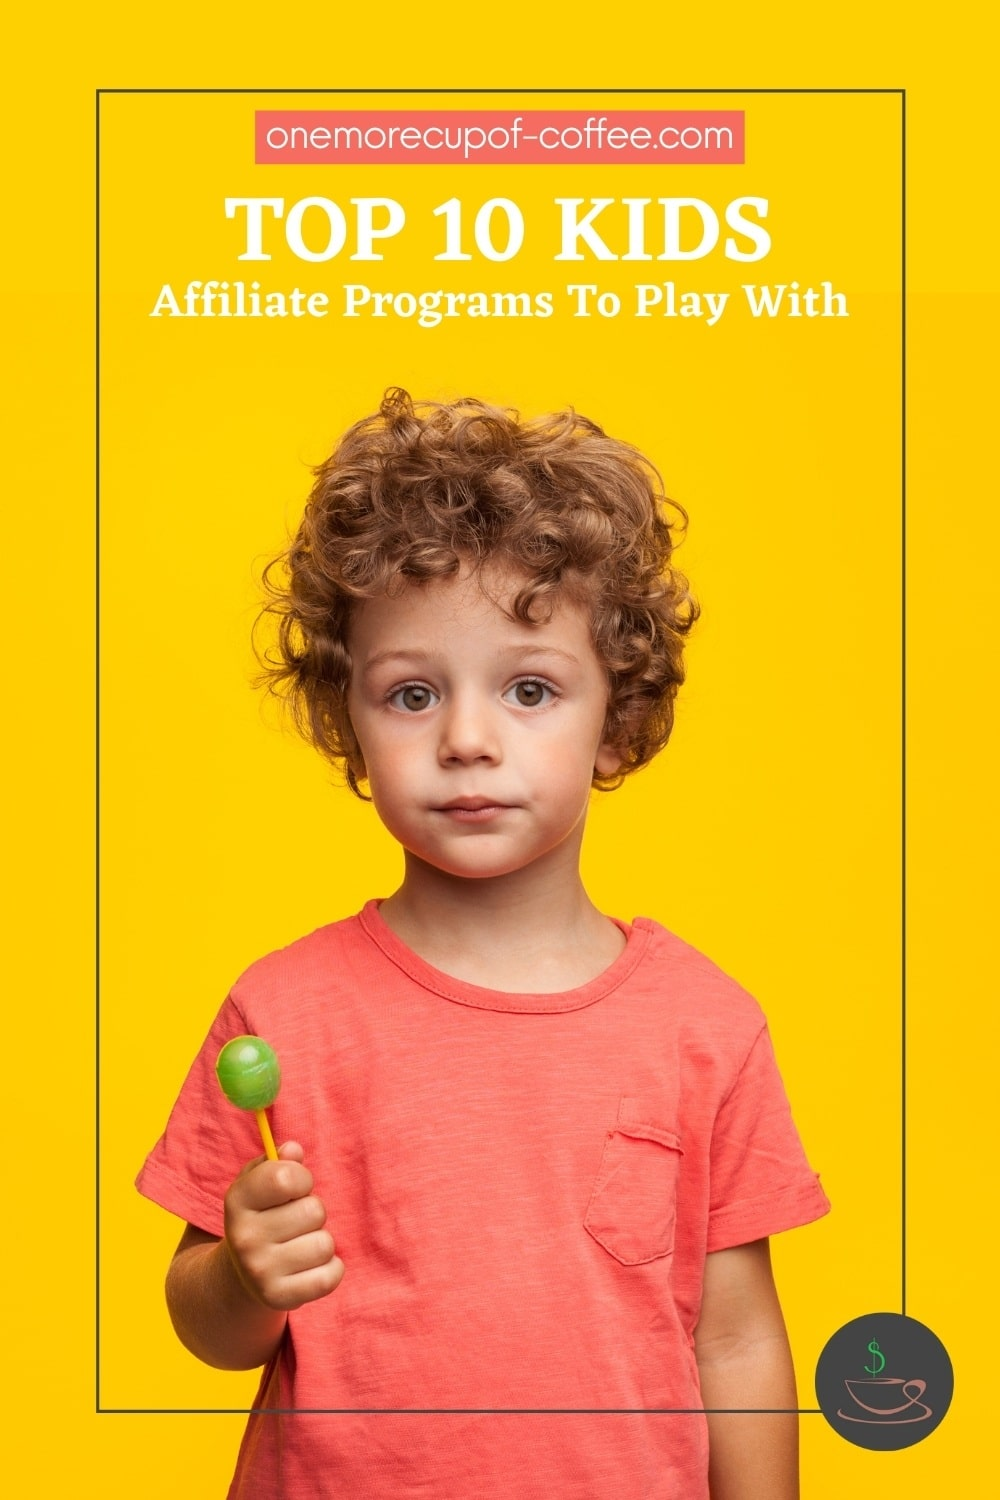 image of a curly boy against a yellow background, in coral t-shirt, holding a green lollipop; with text overlay